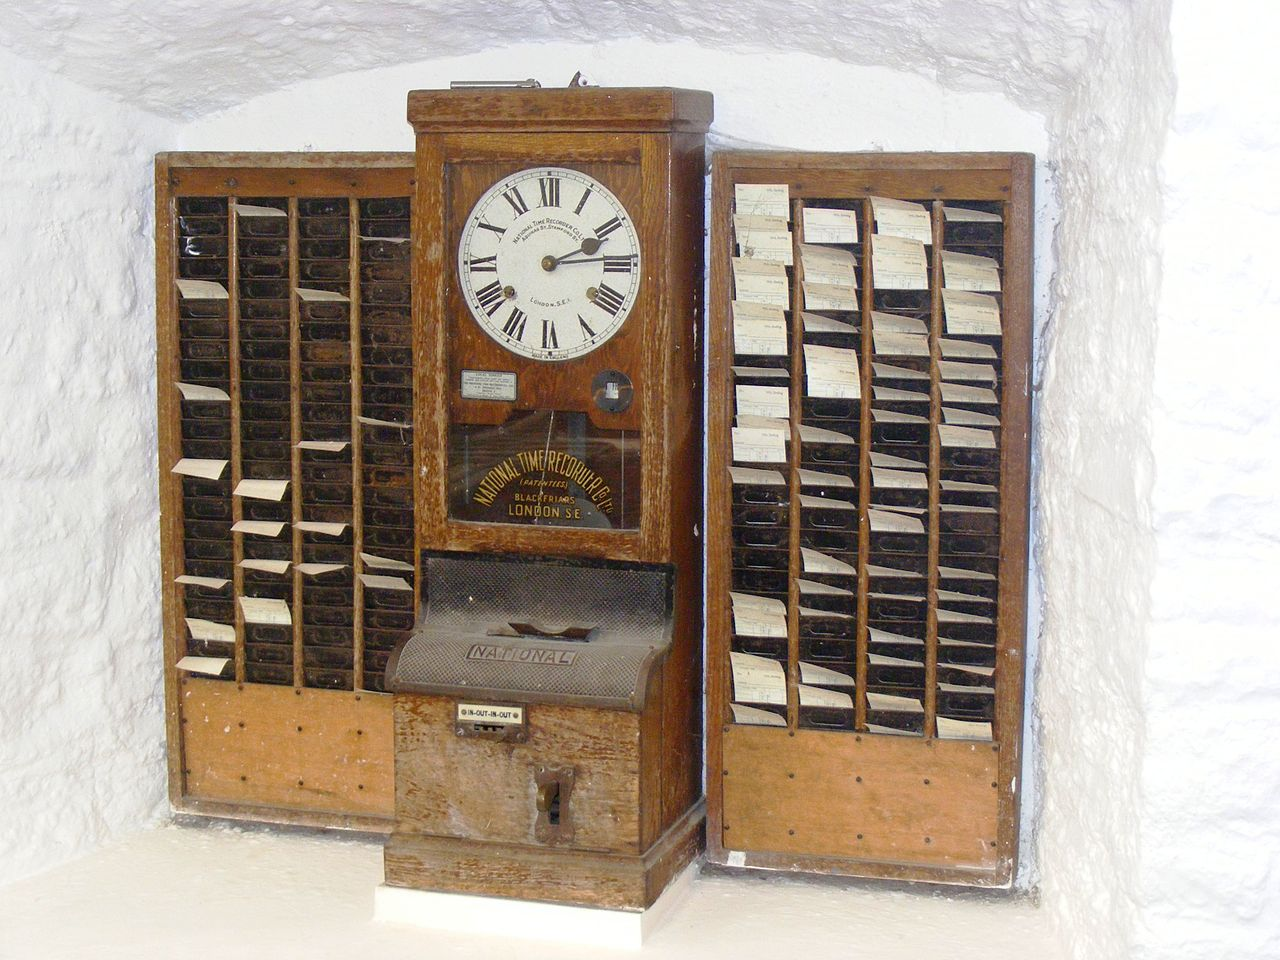 A tall wooden punch-in clock flanked by two wooden file organizers in an arched niche of a whitewashed stone wall. Time clock at Wookey Hole Cave Museum in England, photo by Rodw on Wikimedia Commons.